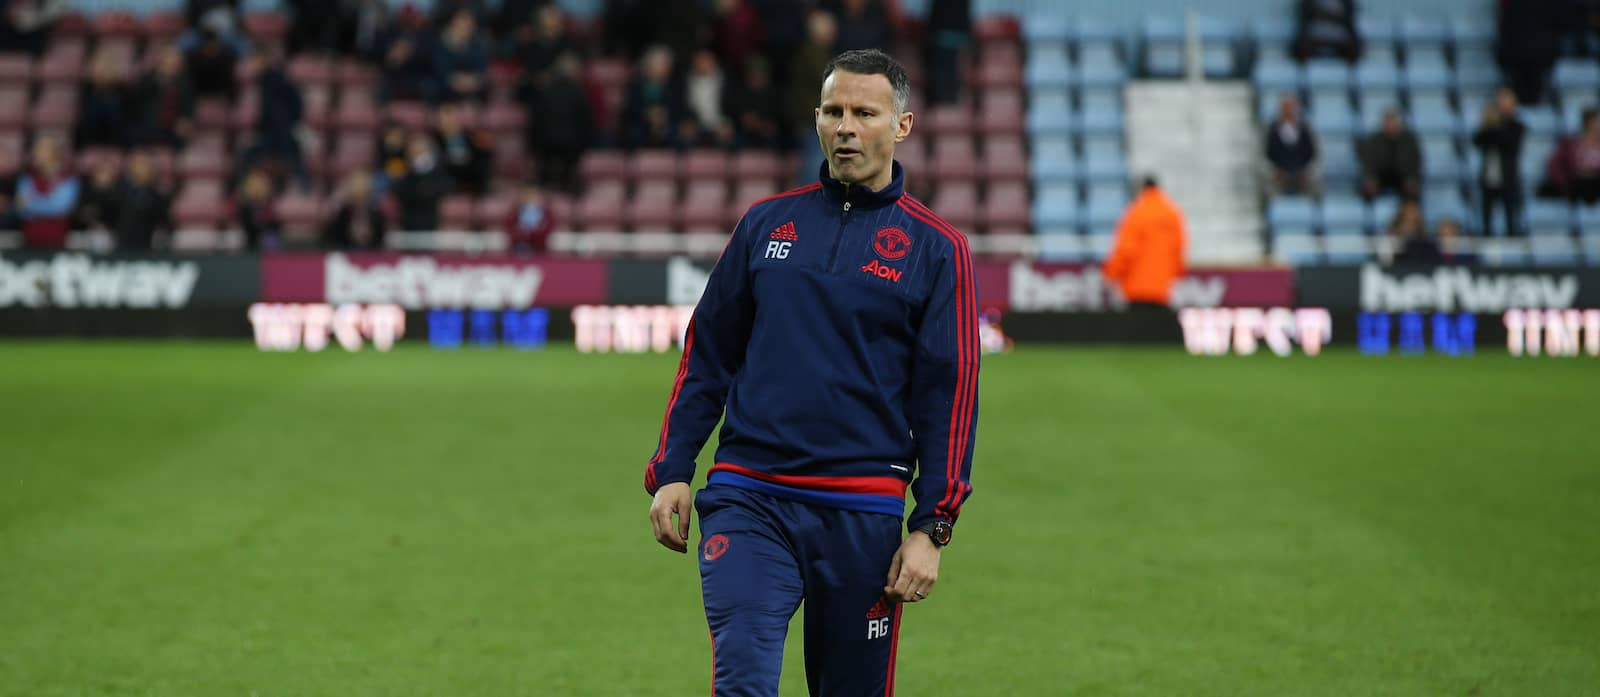 Former Manchester United assistant manager Steve Round believes Ryan Giggs should leave